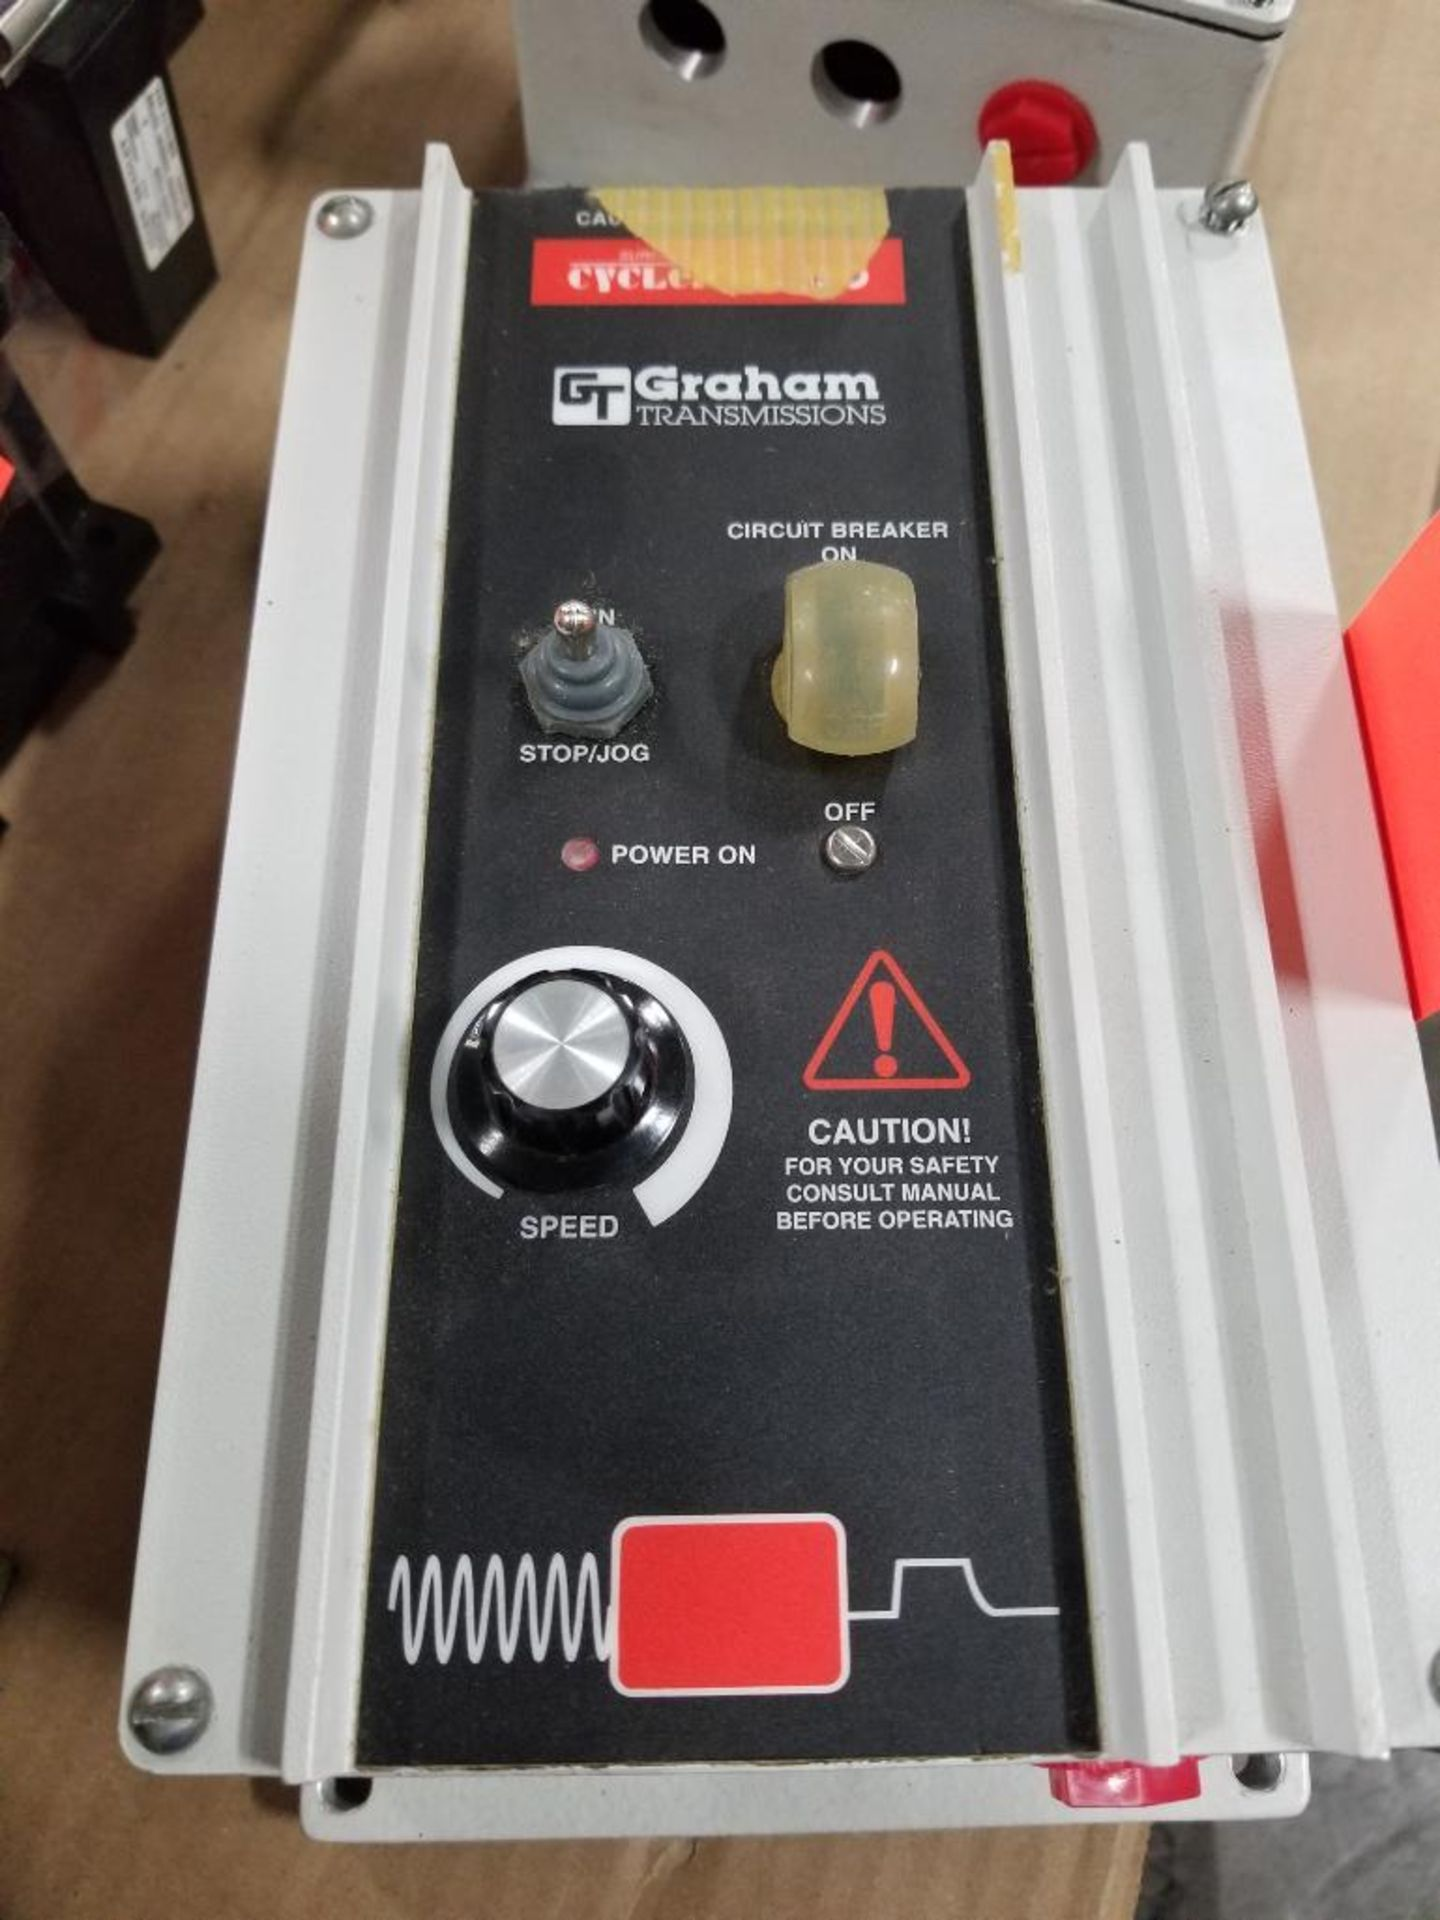 Graham Transmissions Cycletrol 150 DC motor controller. 176B6003. Marked repaired.